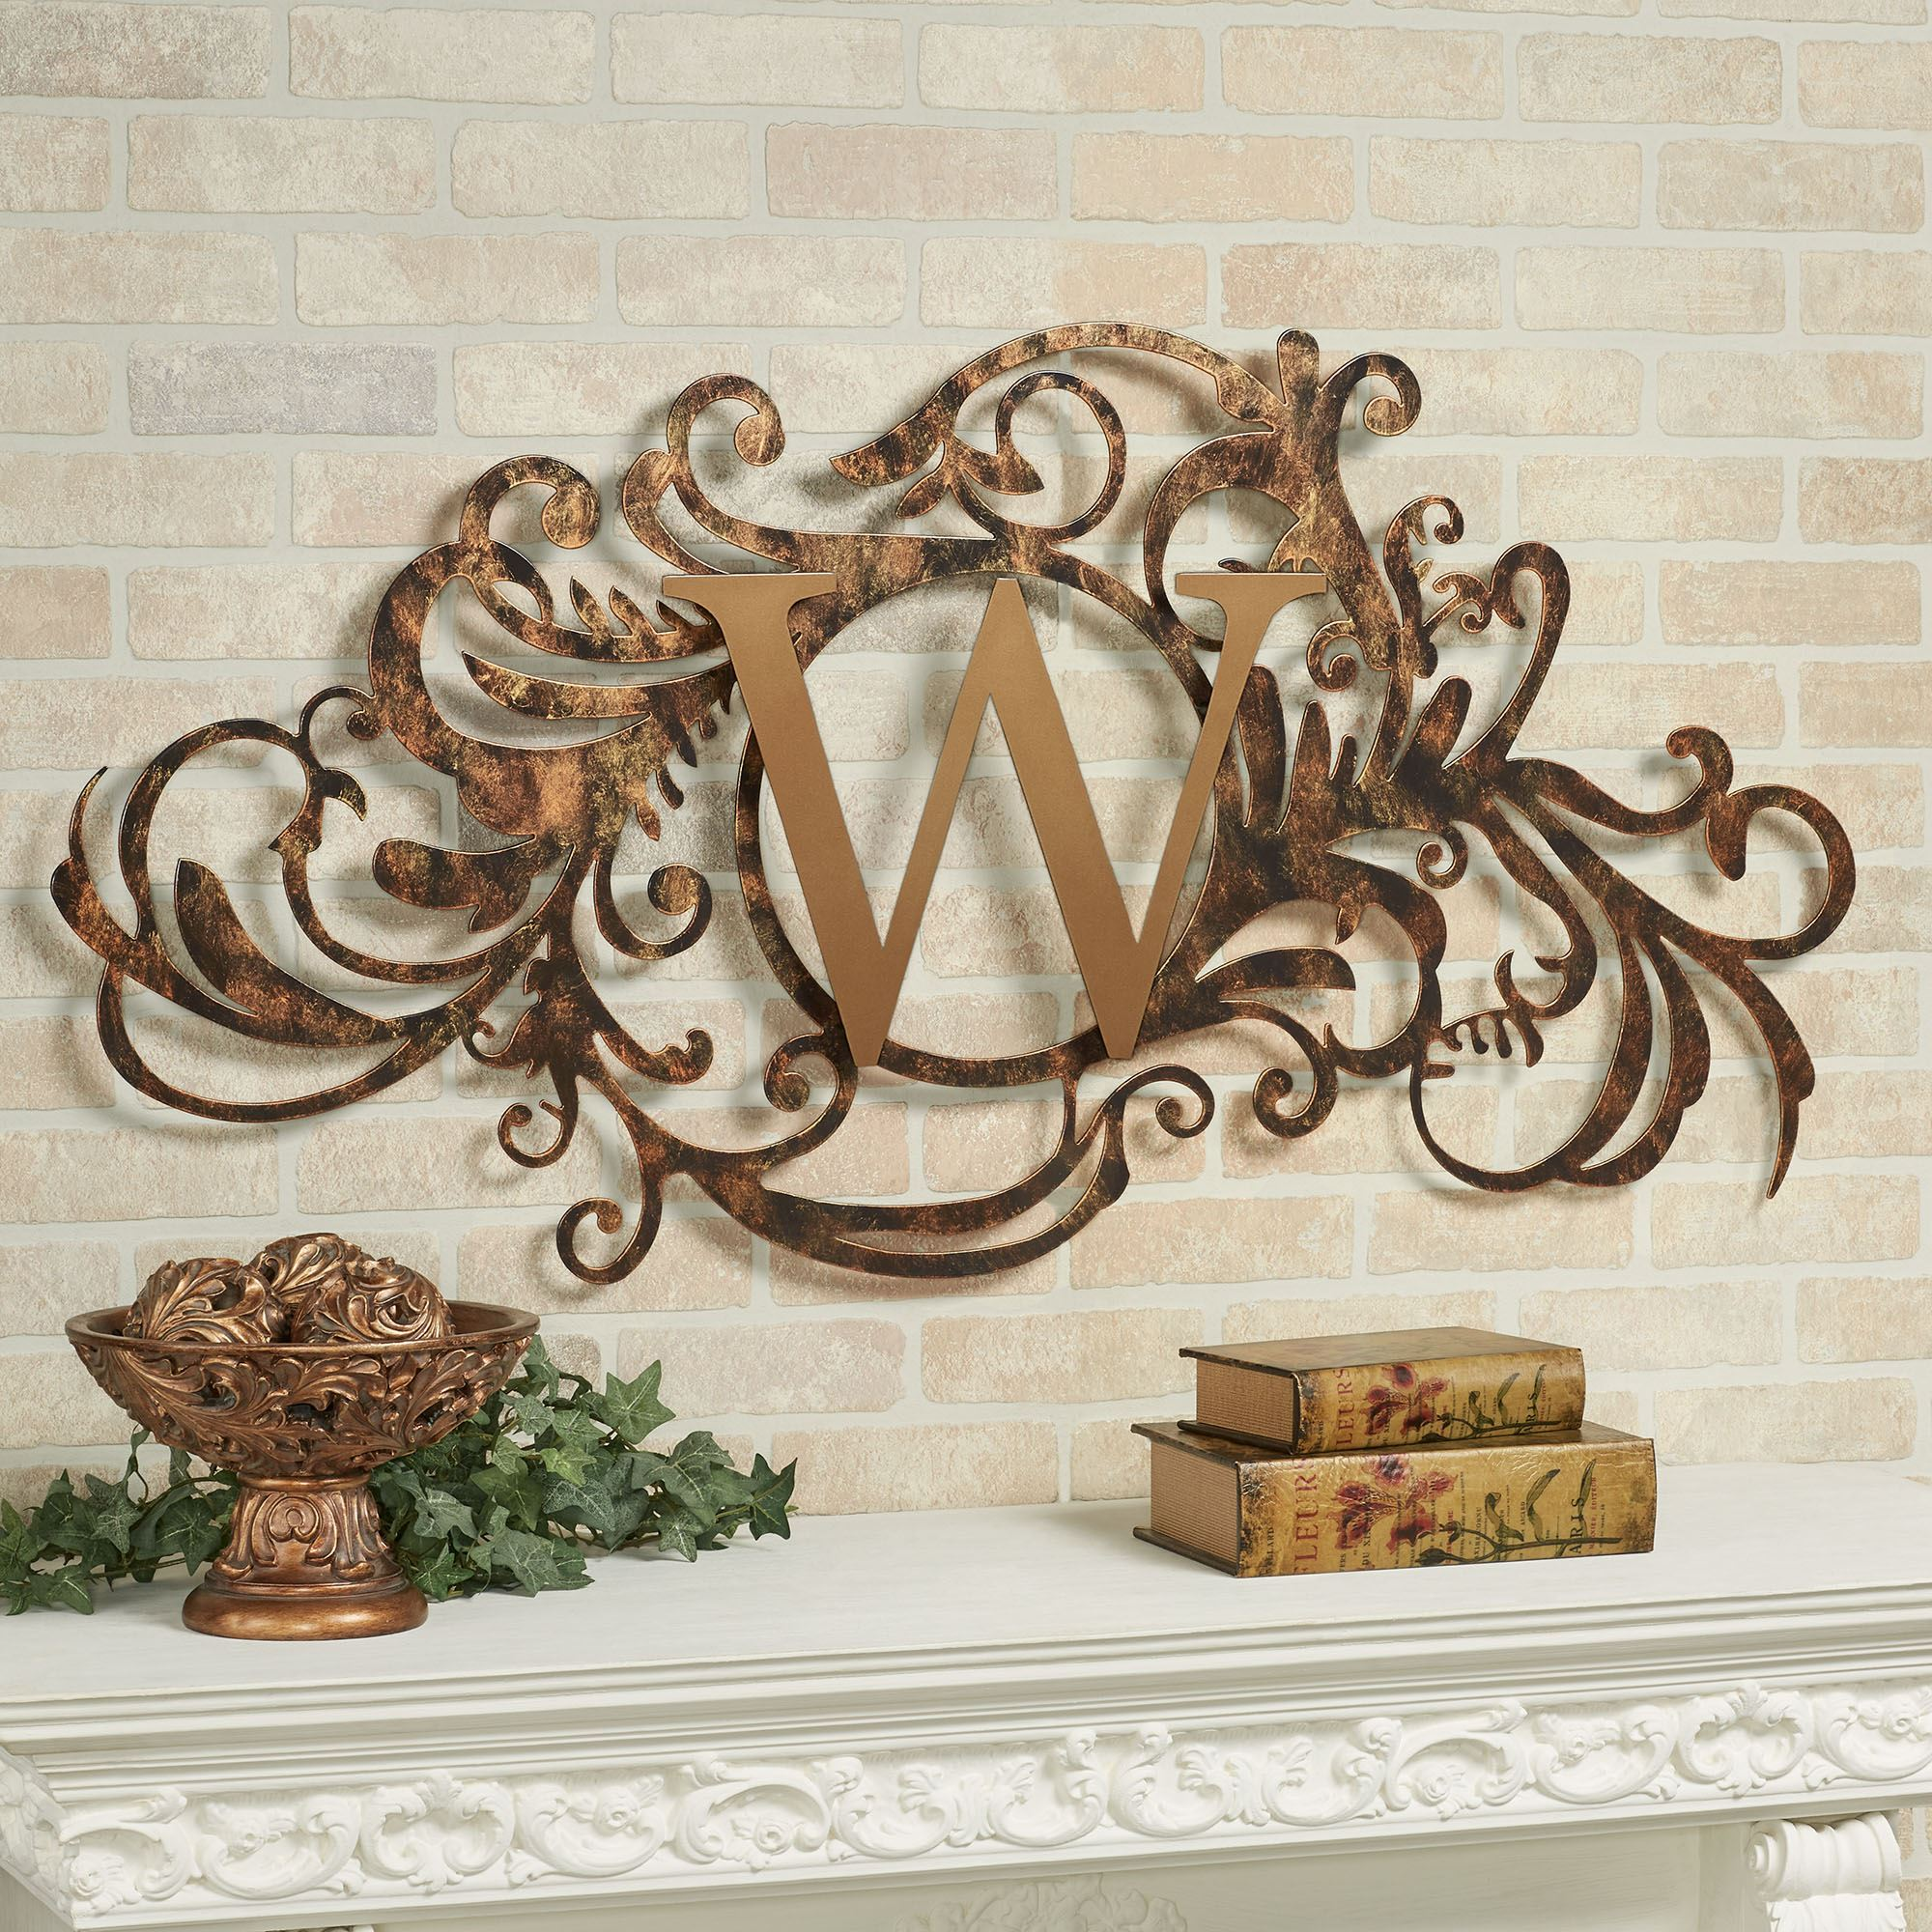 Monogram Metal Wall Art 001 - Monogram Metal Wall Art